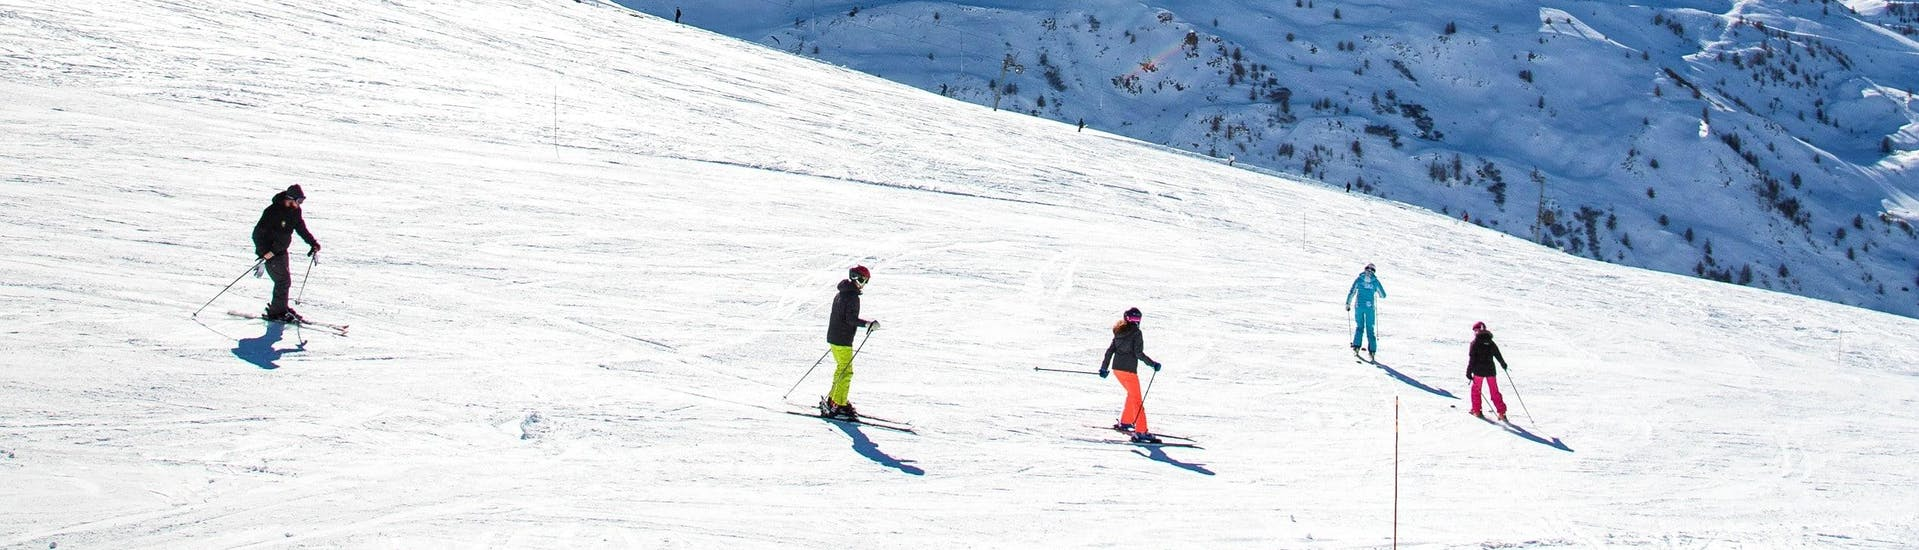 Skiers are skiing down a slope in confidence during their Adult Ski Lessons for All Levels with the ski school ESI Ski Family in Val Thorens.